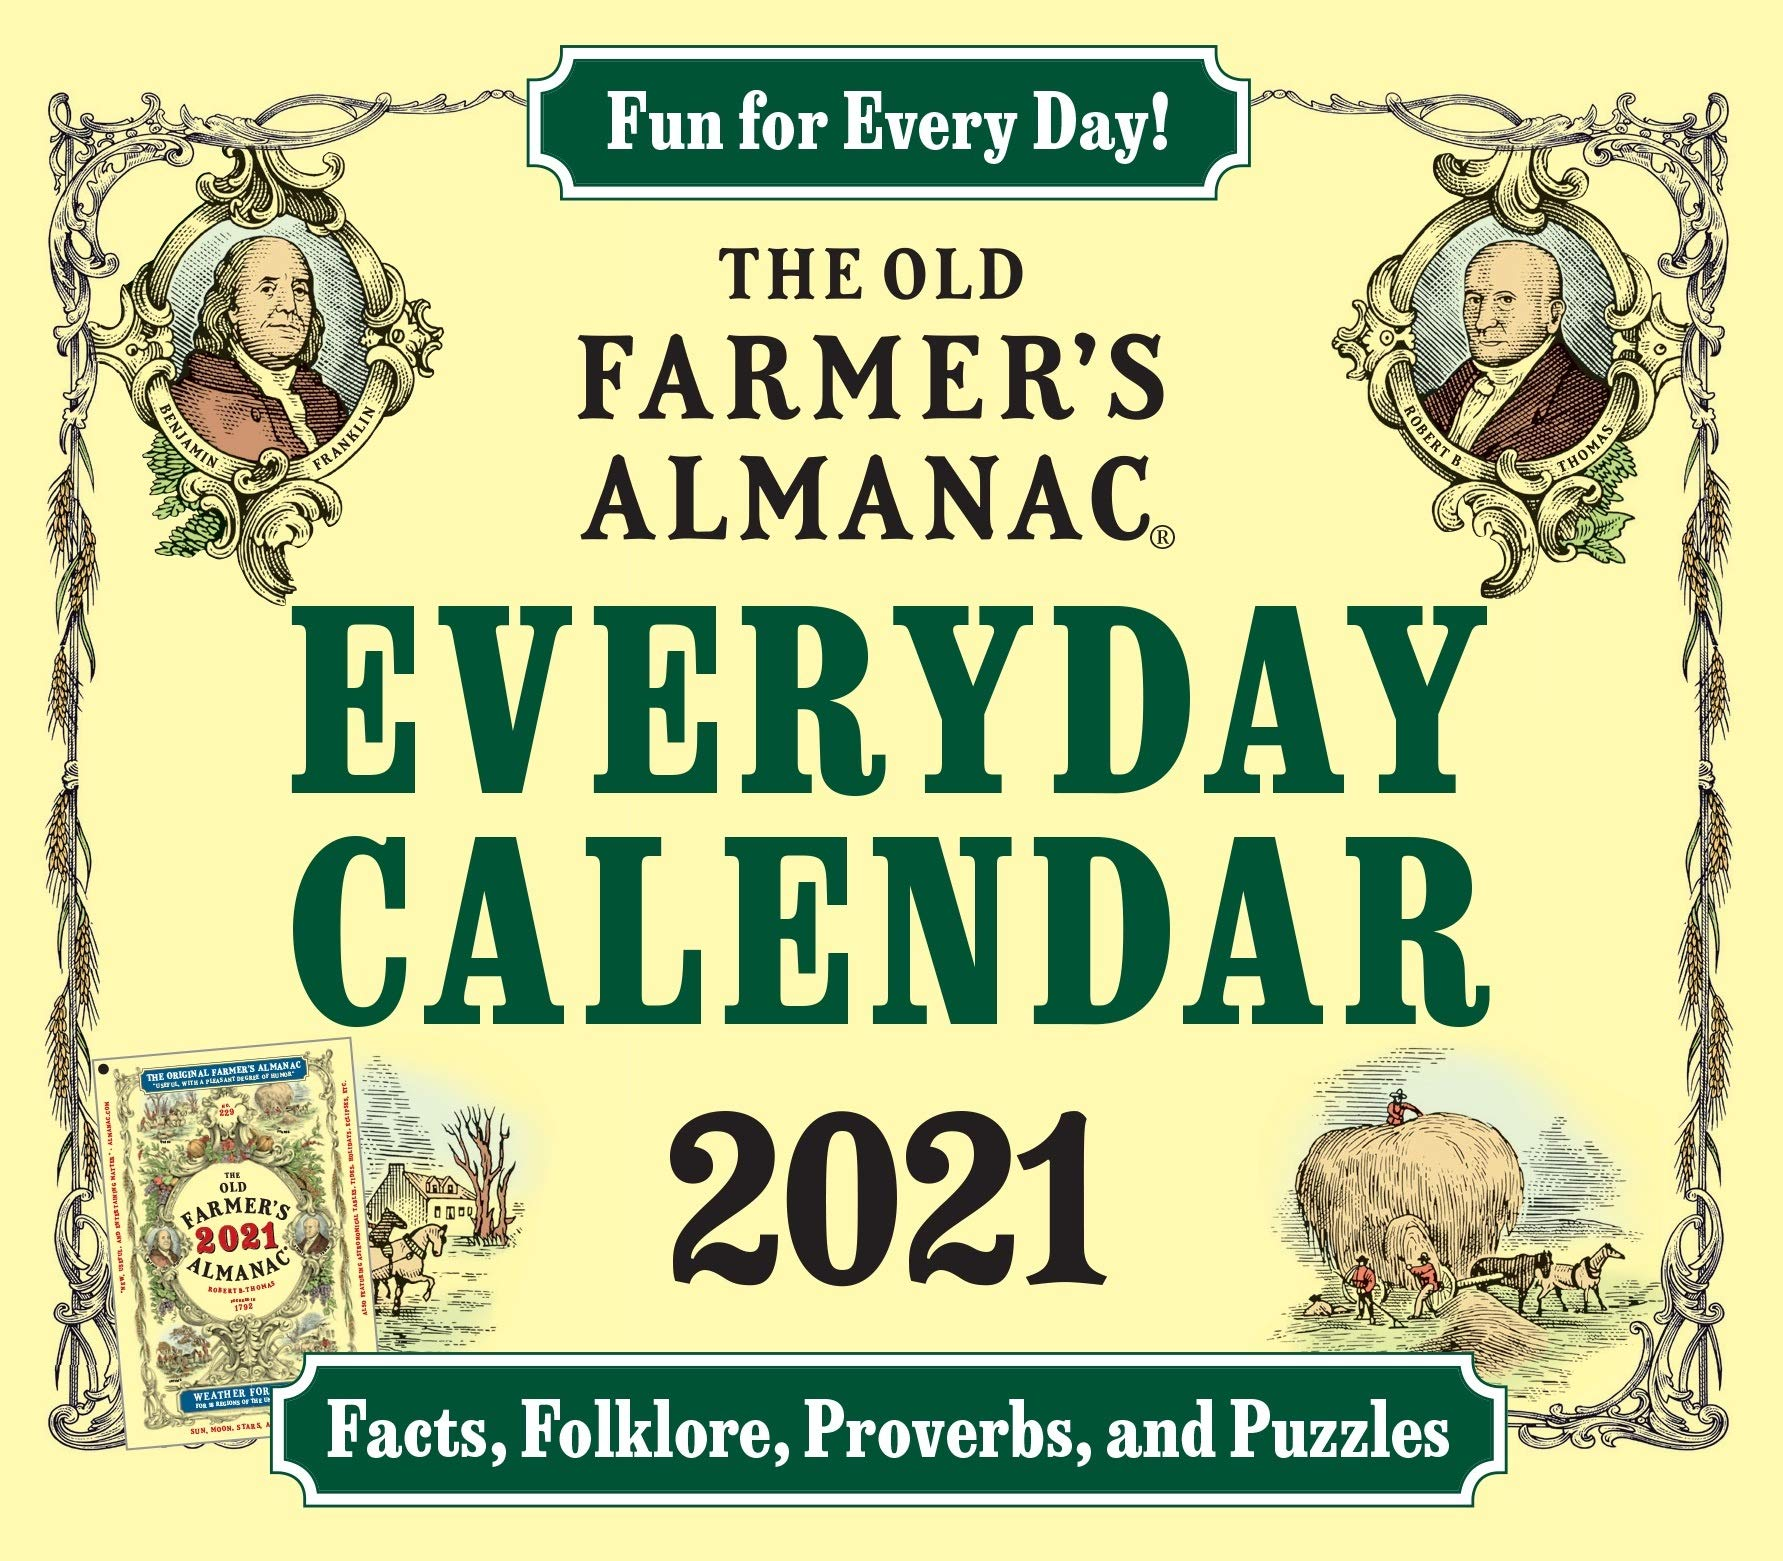 Farmers Almanac Calendar 2021 Amazon.com: The 2021 Old Farmer's Almanac Everday Calendar